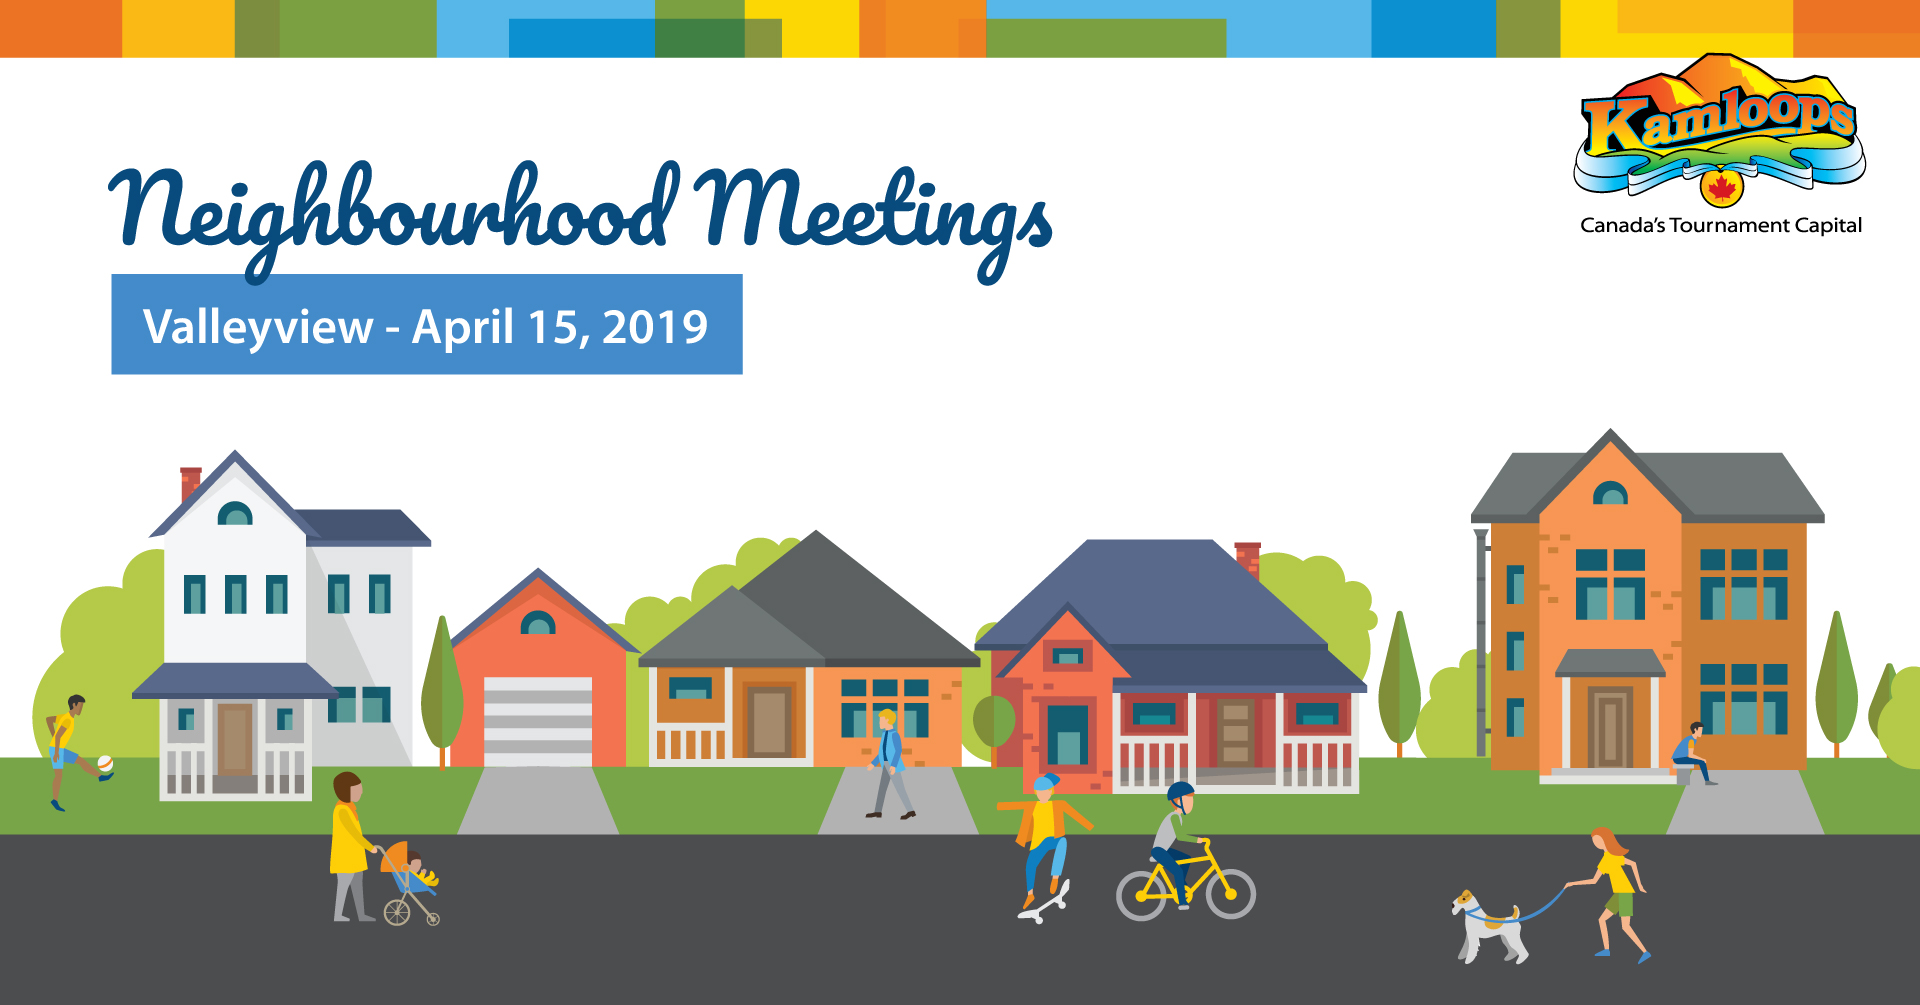 Scd neighbourhoodmeetings socialeventbanner 1920x1005 valleyview2019